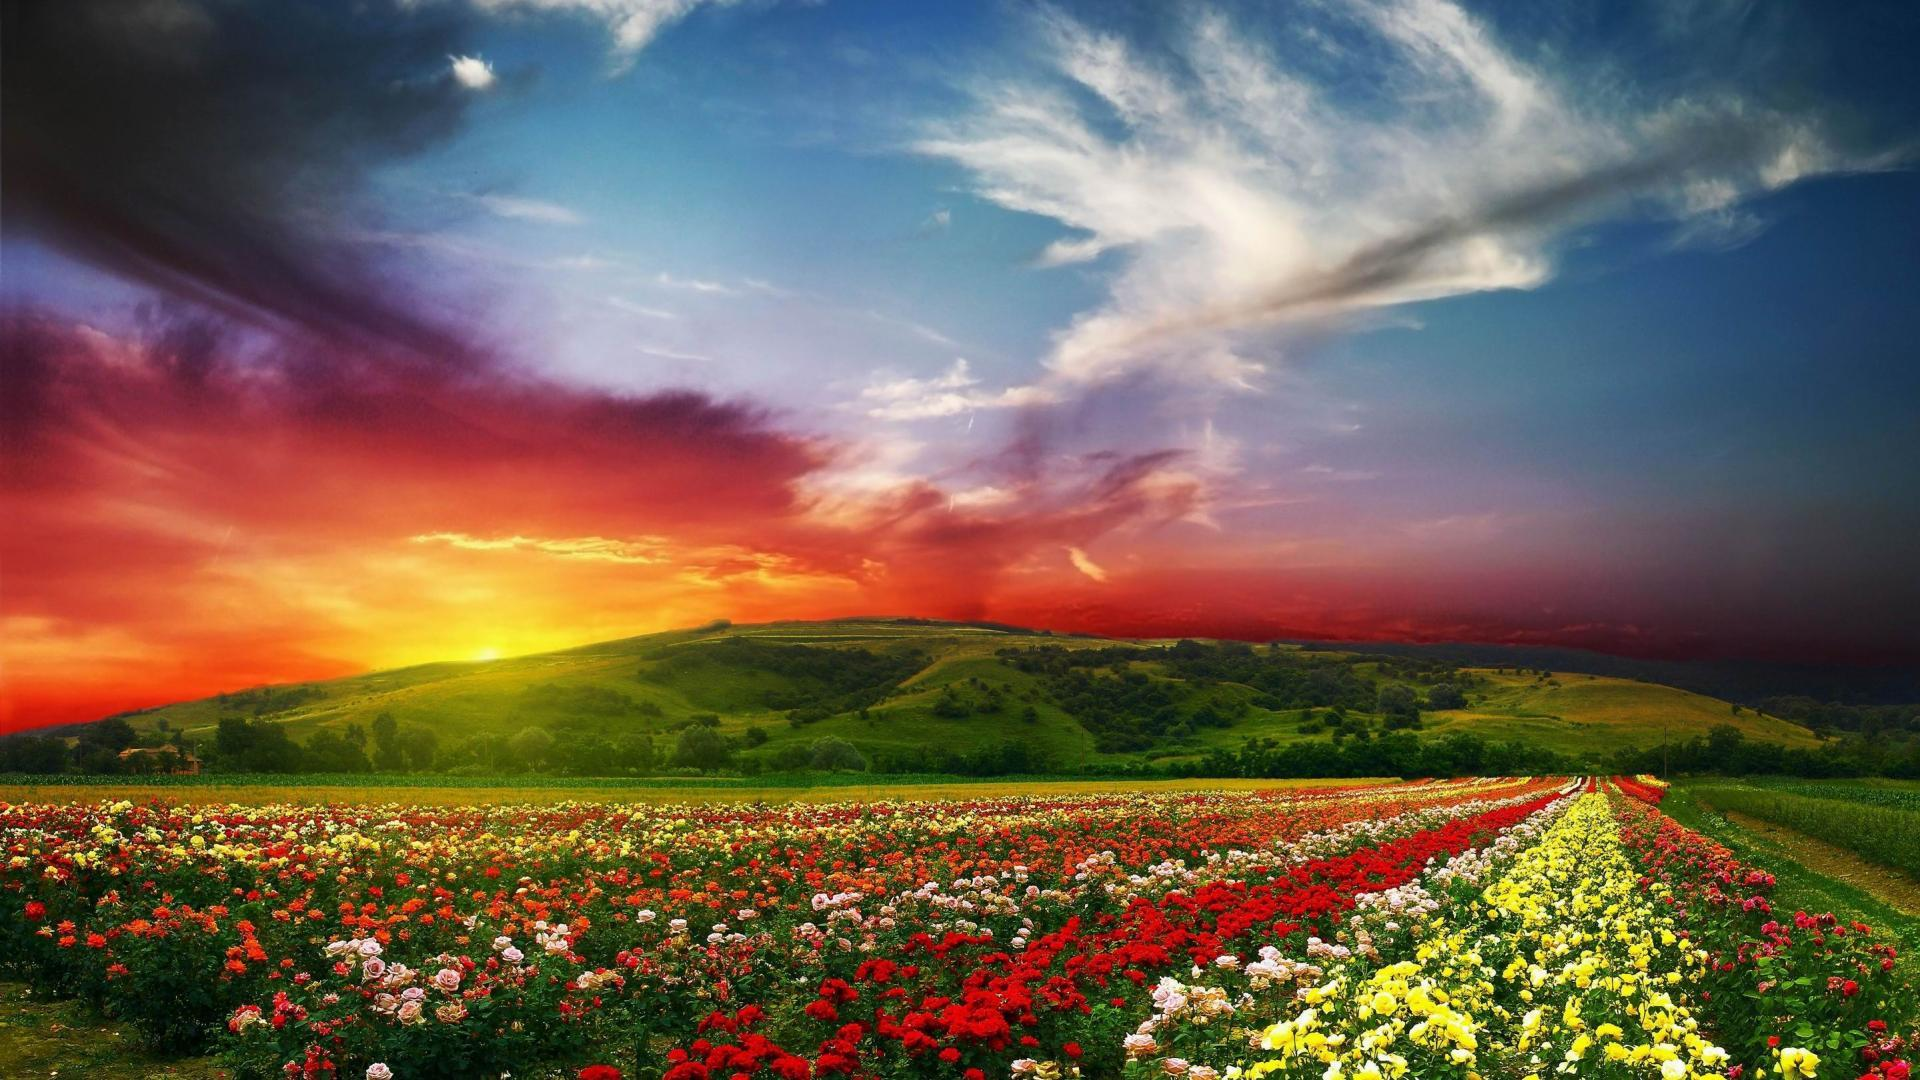 rose flower garden wallpapers - wallpaper cave